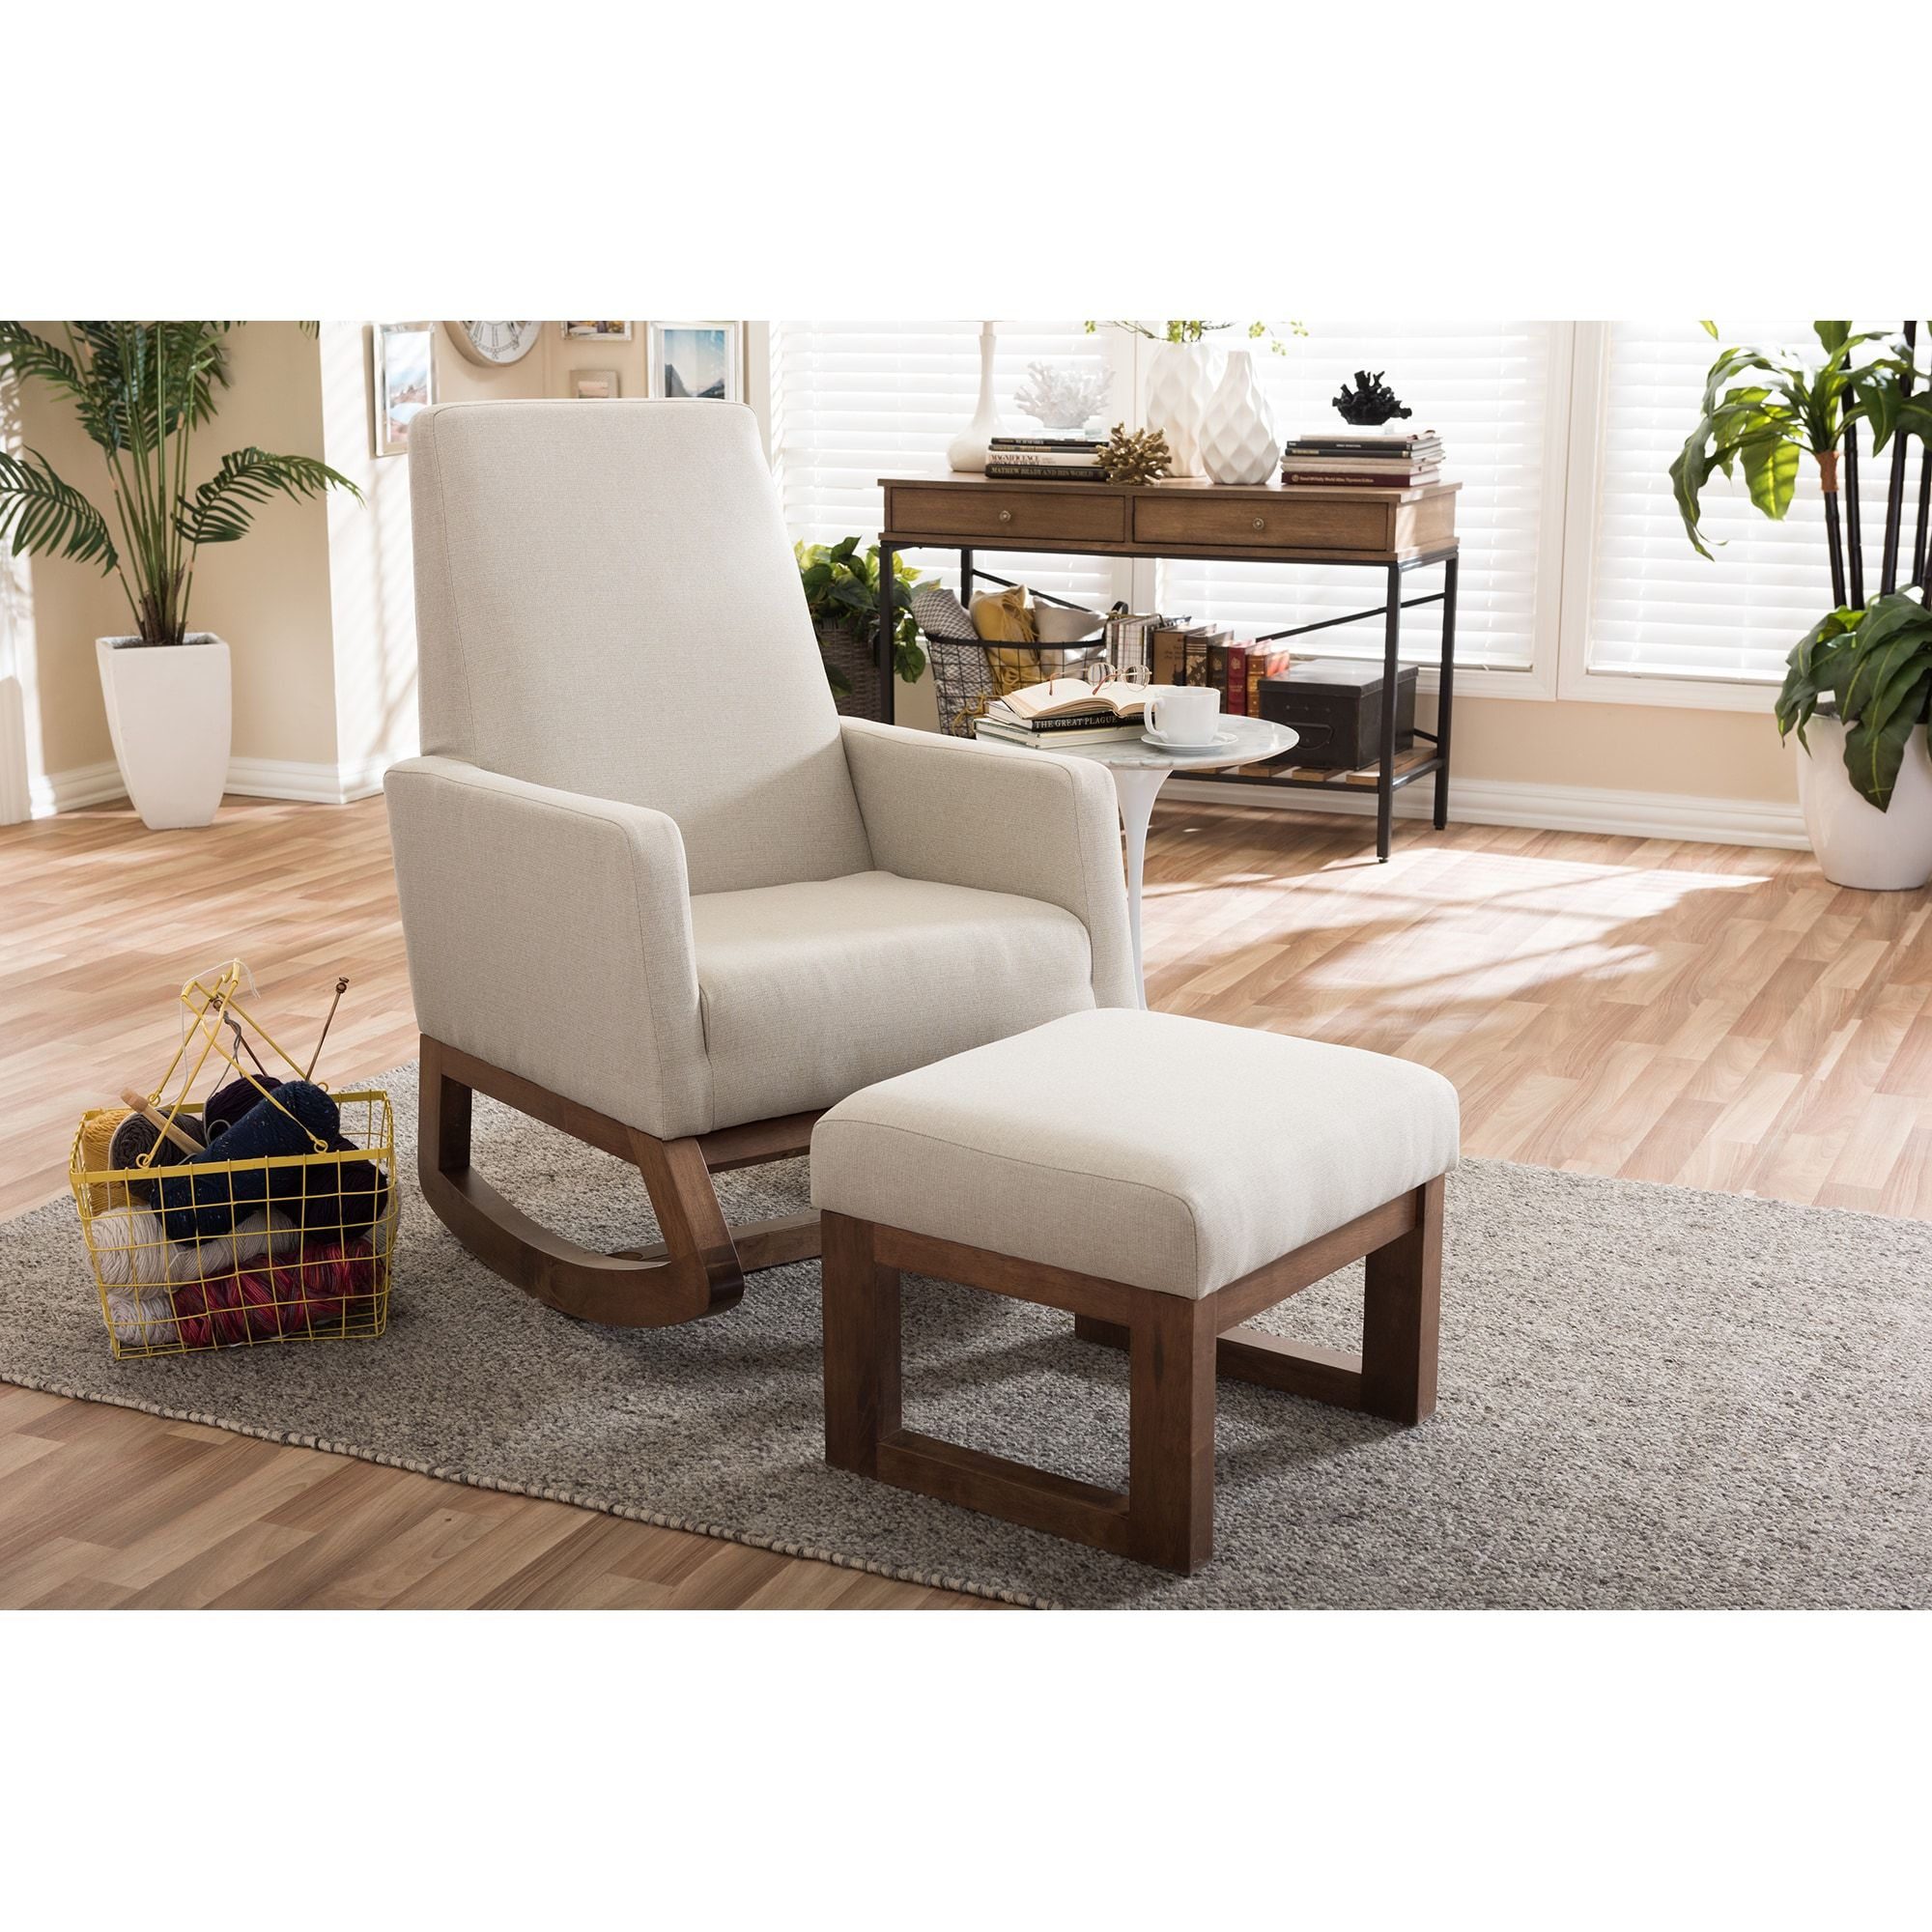 Coleman Rocking Chair Queen Anne Wing Strick Bolton Mid Century Modern Light Beige Upholstered And Ottoman Set